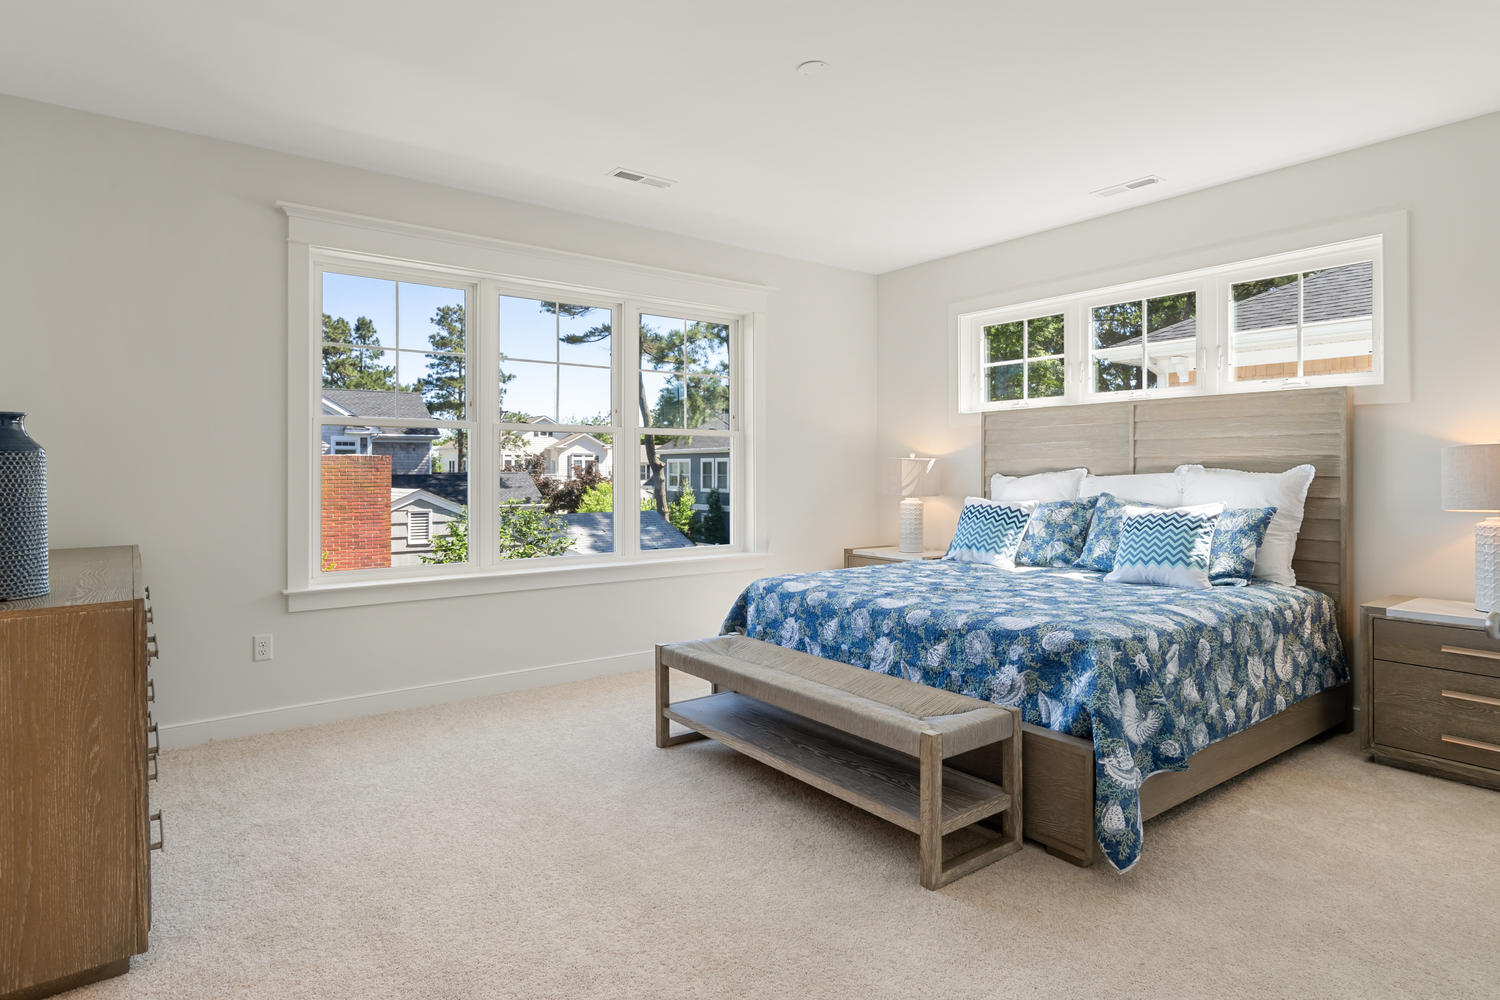 Staged Guest Bedroom with Large Bed, Dresser and Bench